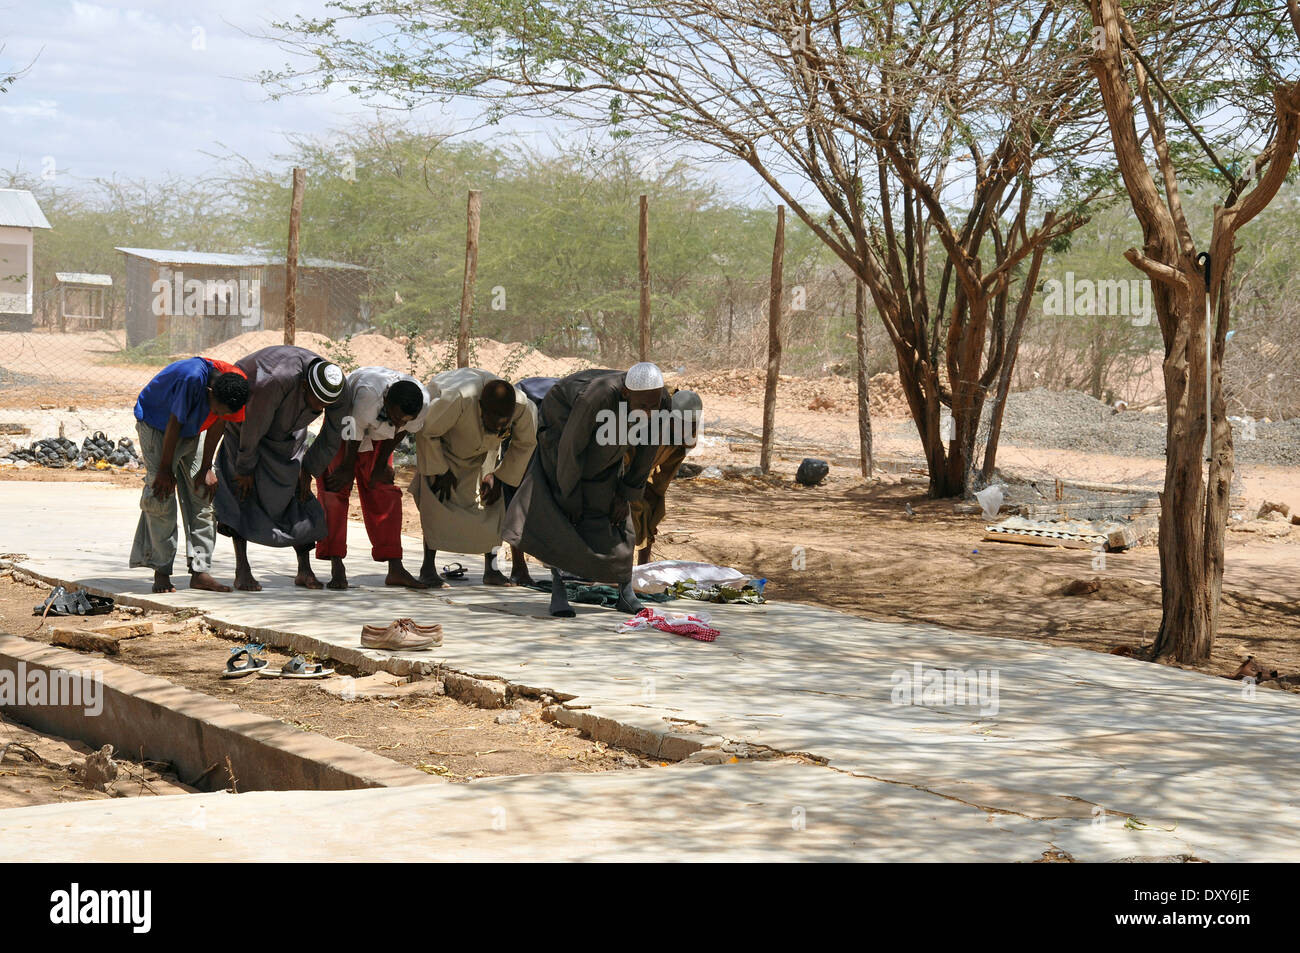 DADAAB, SOMALIA-AUGUST 08: Muslims praying in Dadaab refugee camp. Hundreds of thousands of refugees in the camp that is located - Stock Image